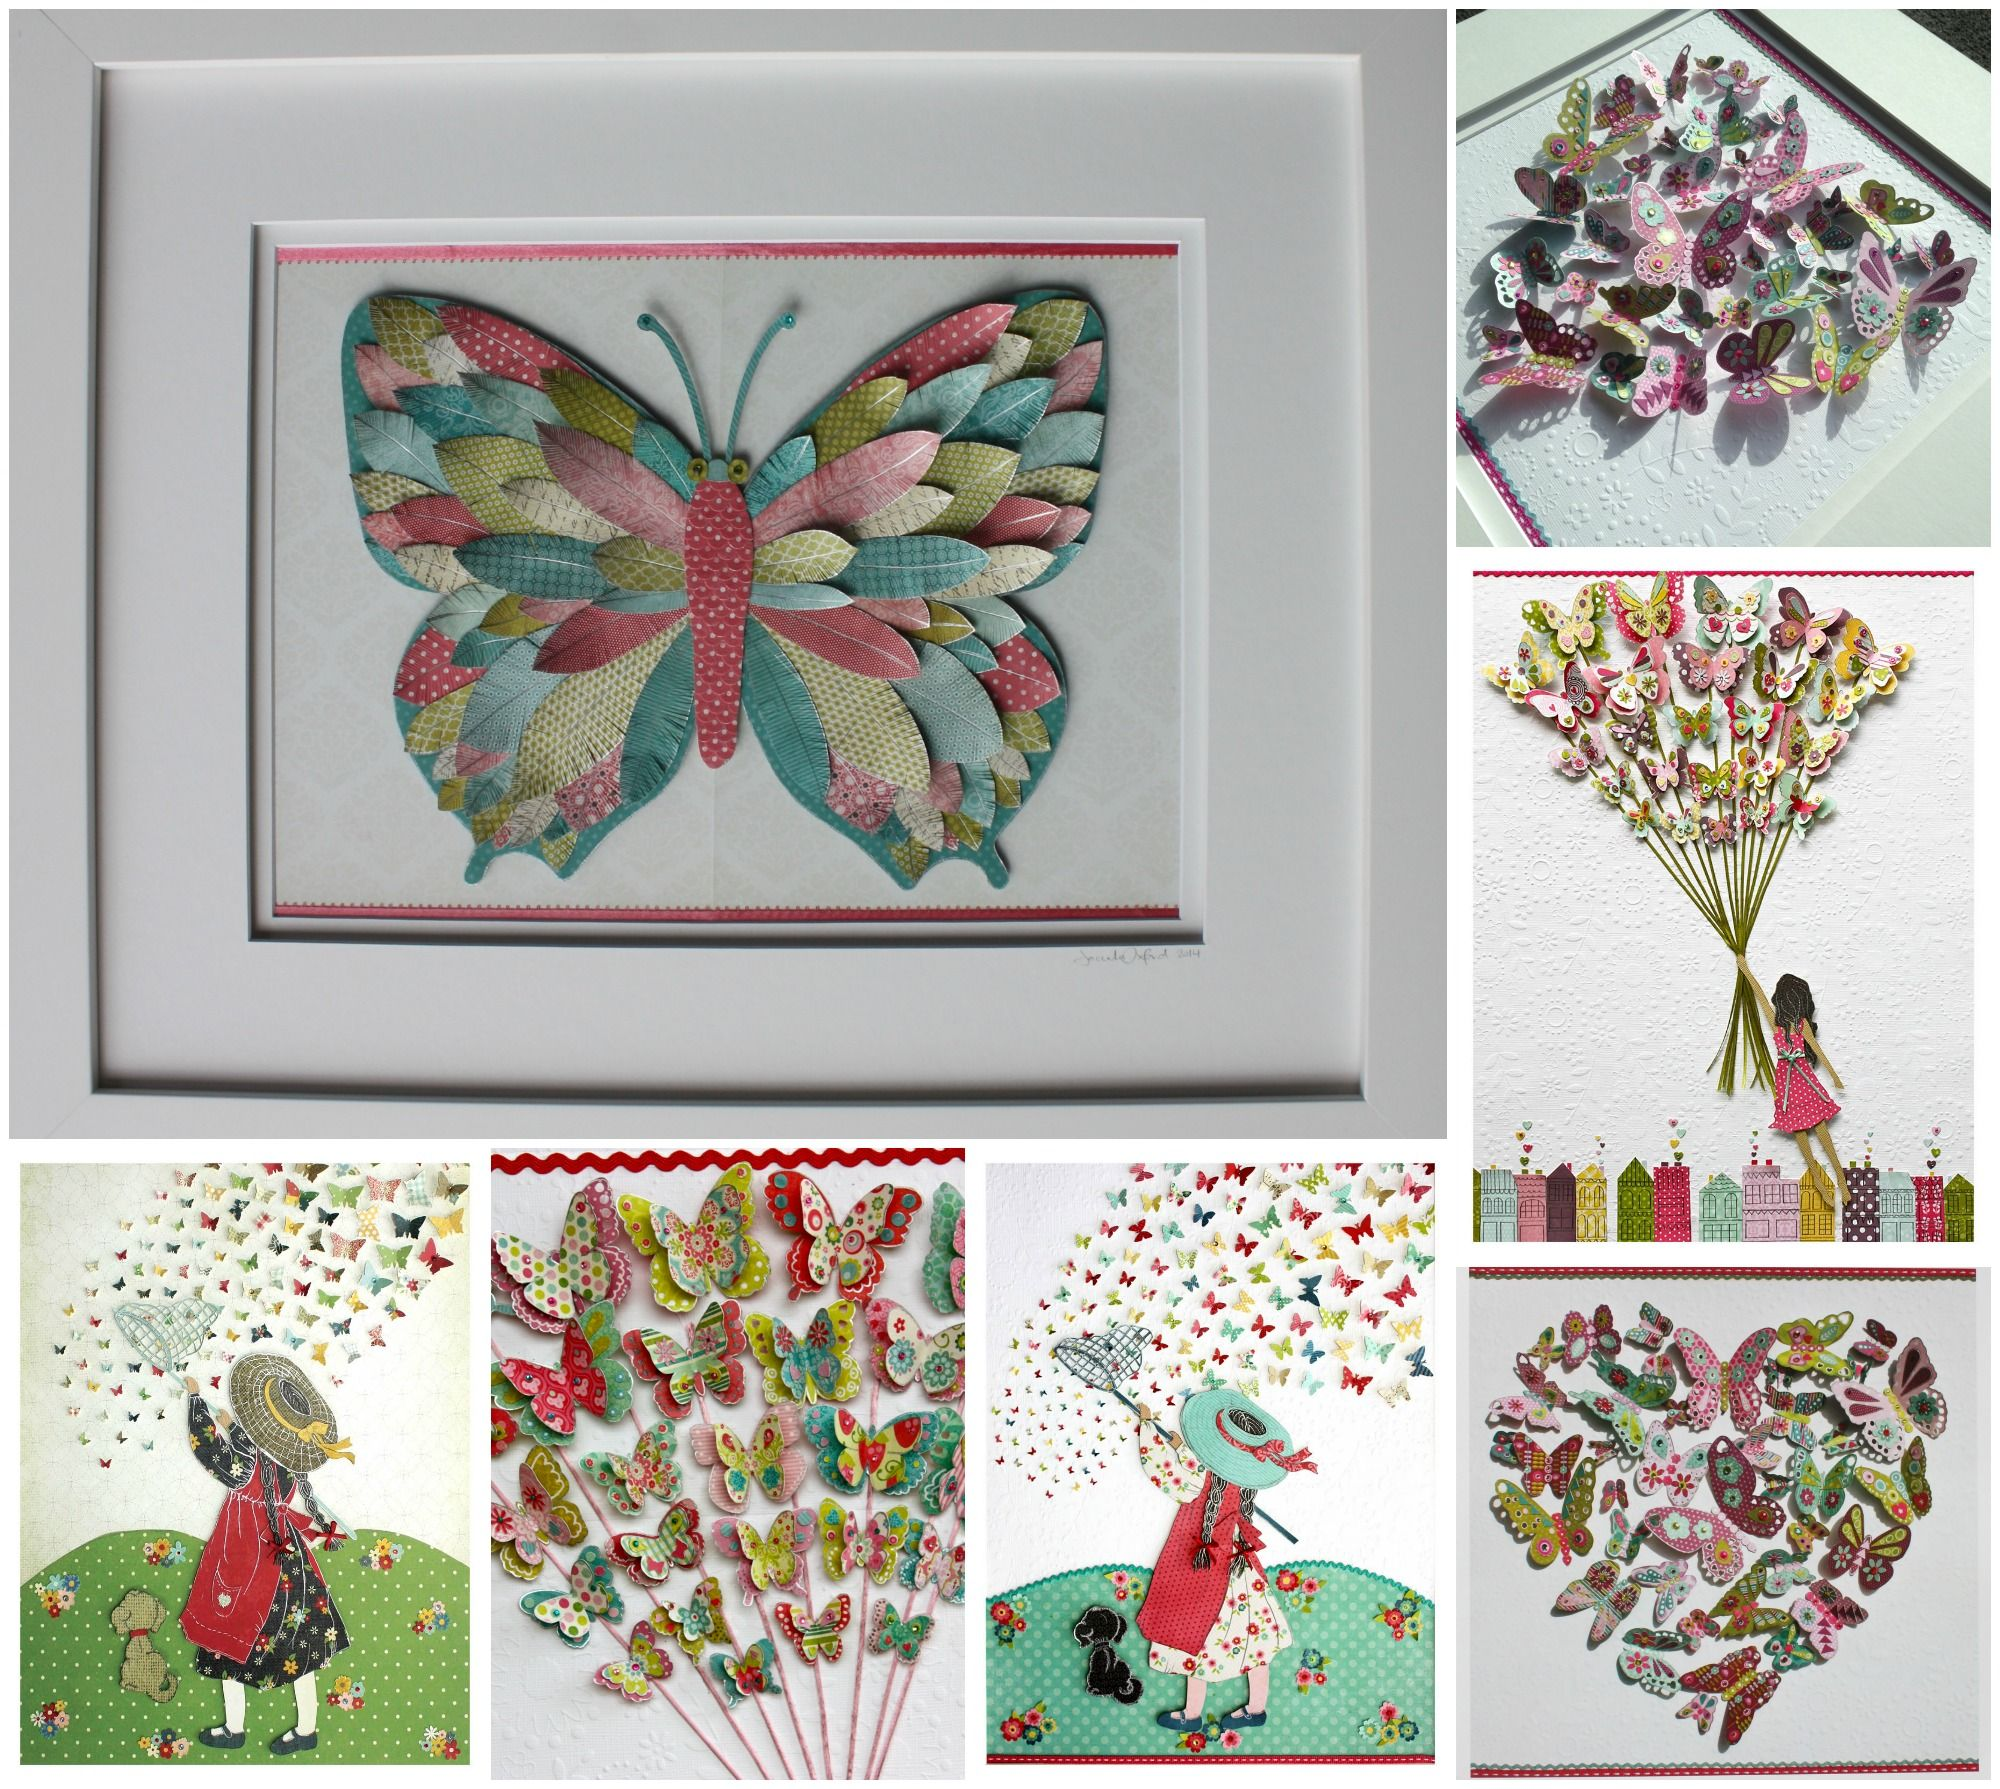 Butterfly Art Original 3D Paper Cut Framed Artwork By Roxyoxy